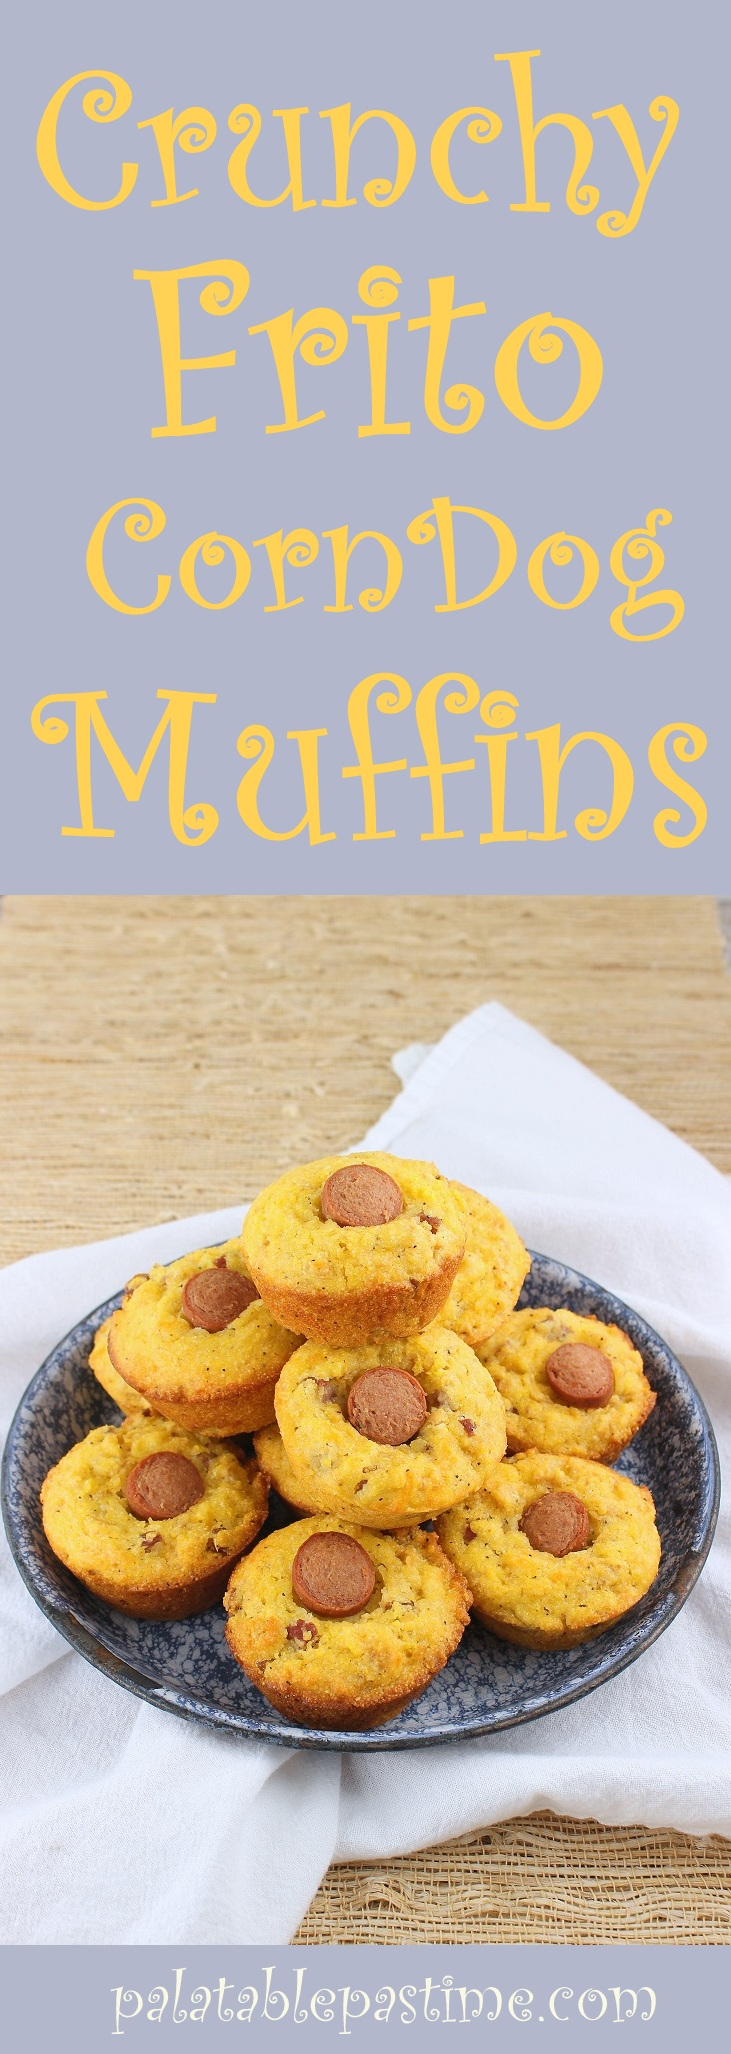 Corn Muffins With Hot Dogs In Them